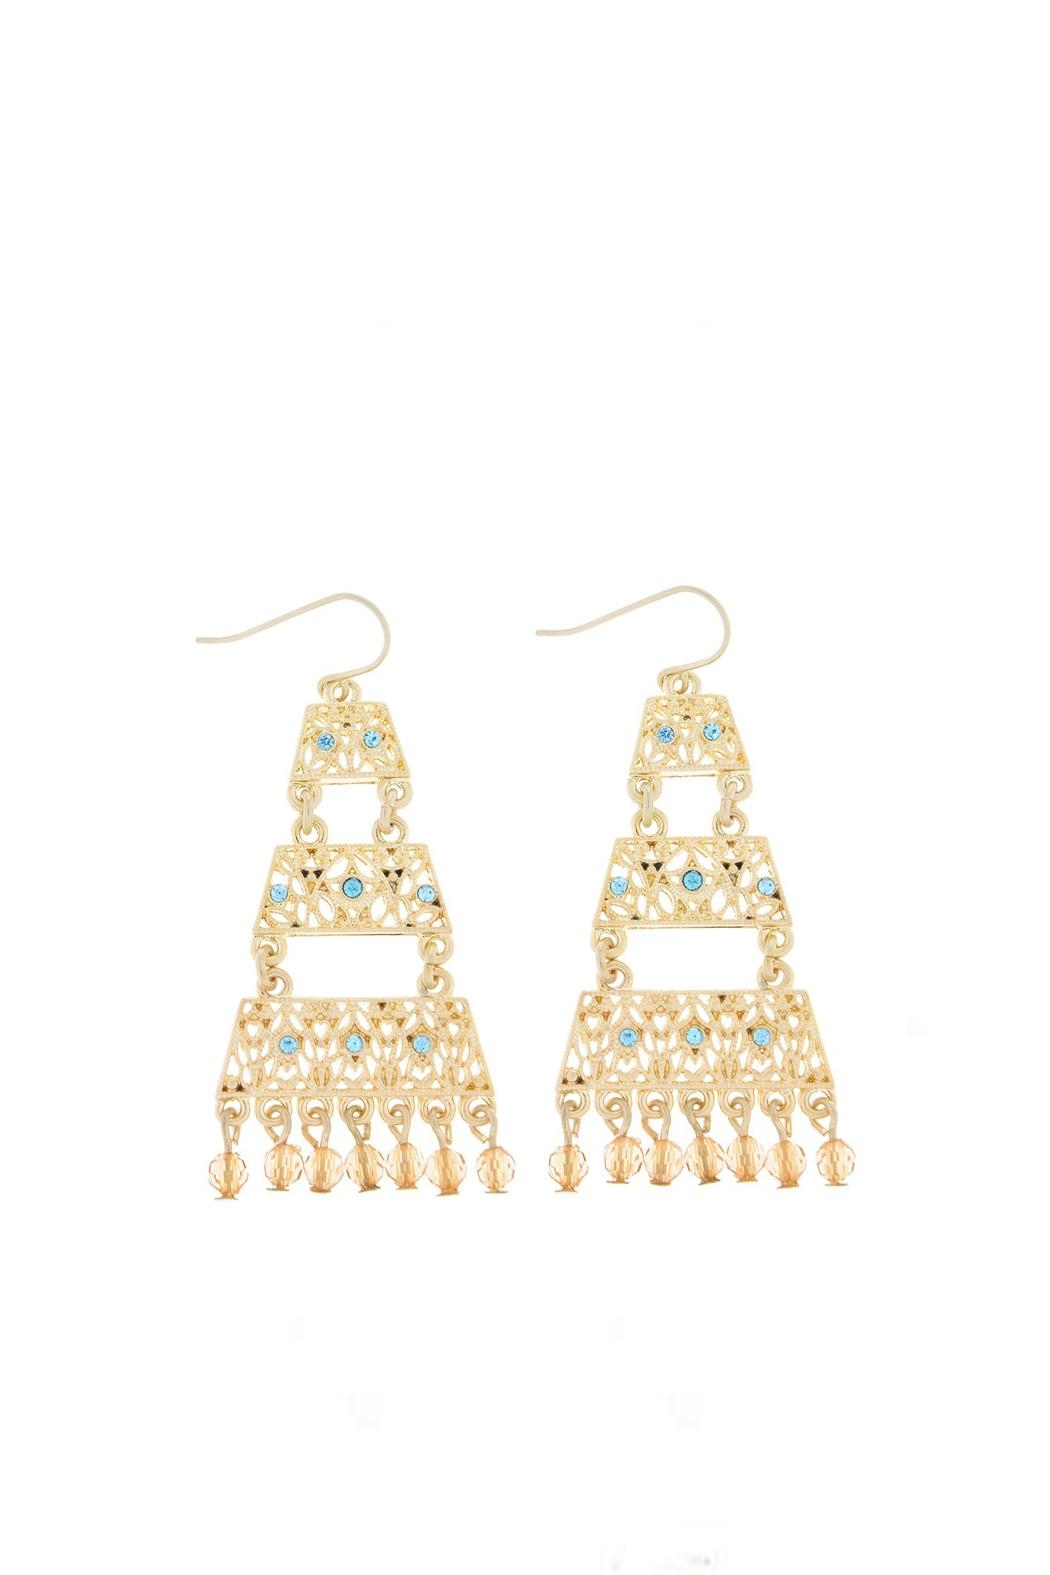 Wild Lilies Jewelry  Gold Pyramid Earrings - Main Image